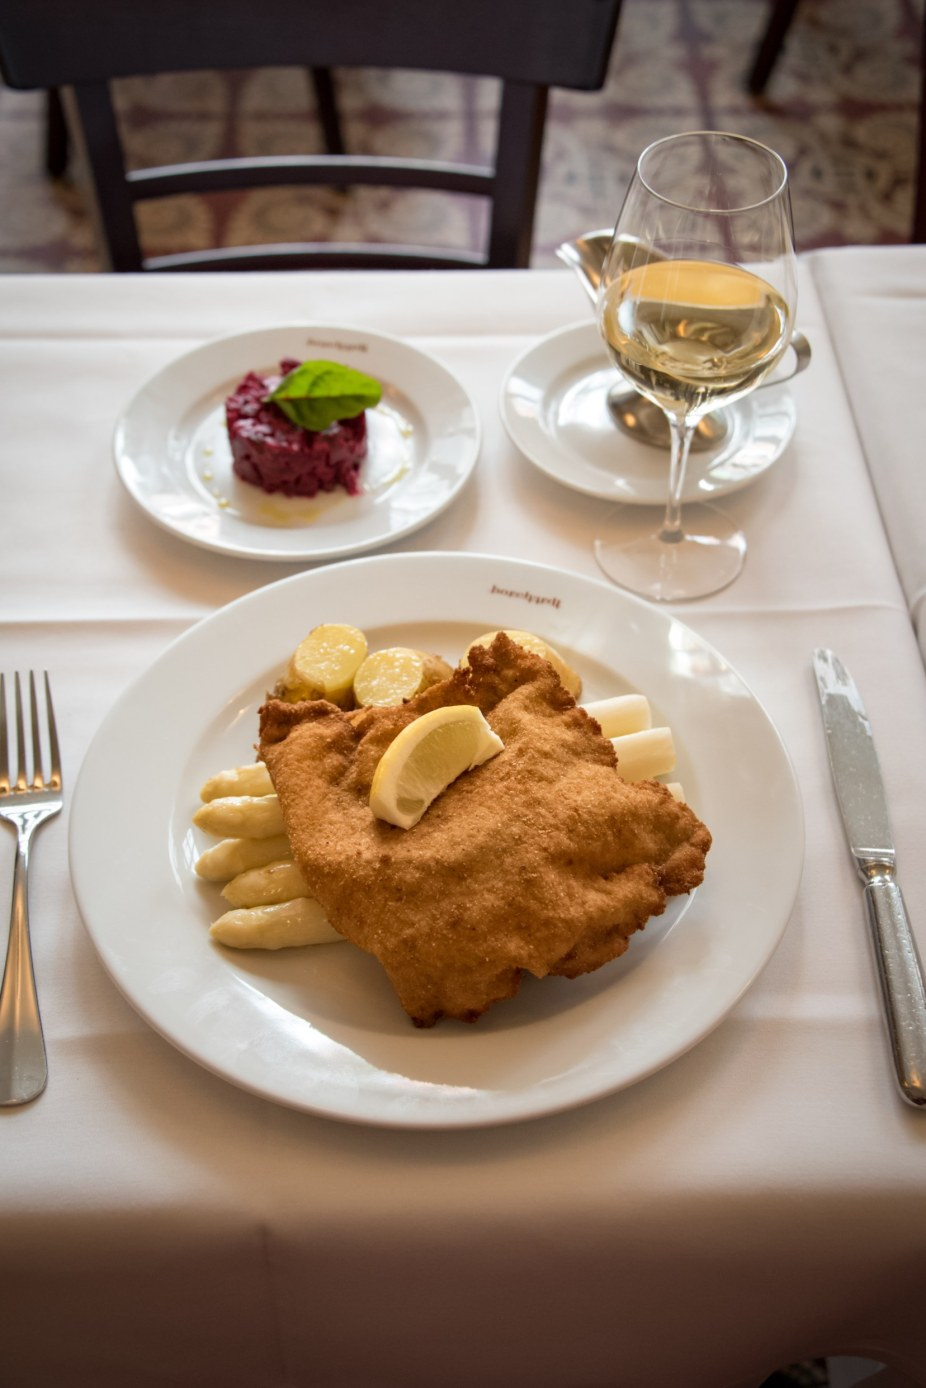 Borchardt, Ultraclassic Berlin Restaurant - The Famous Schnitzel